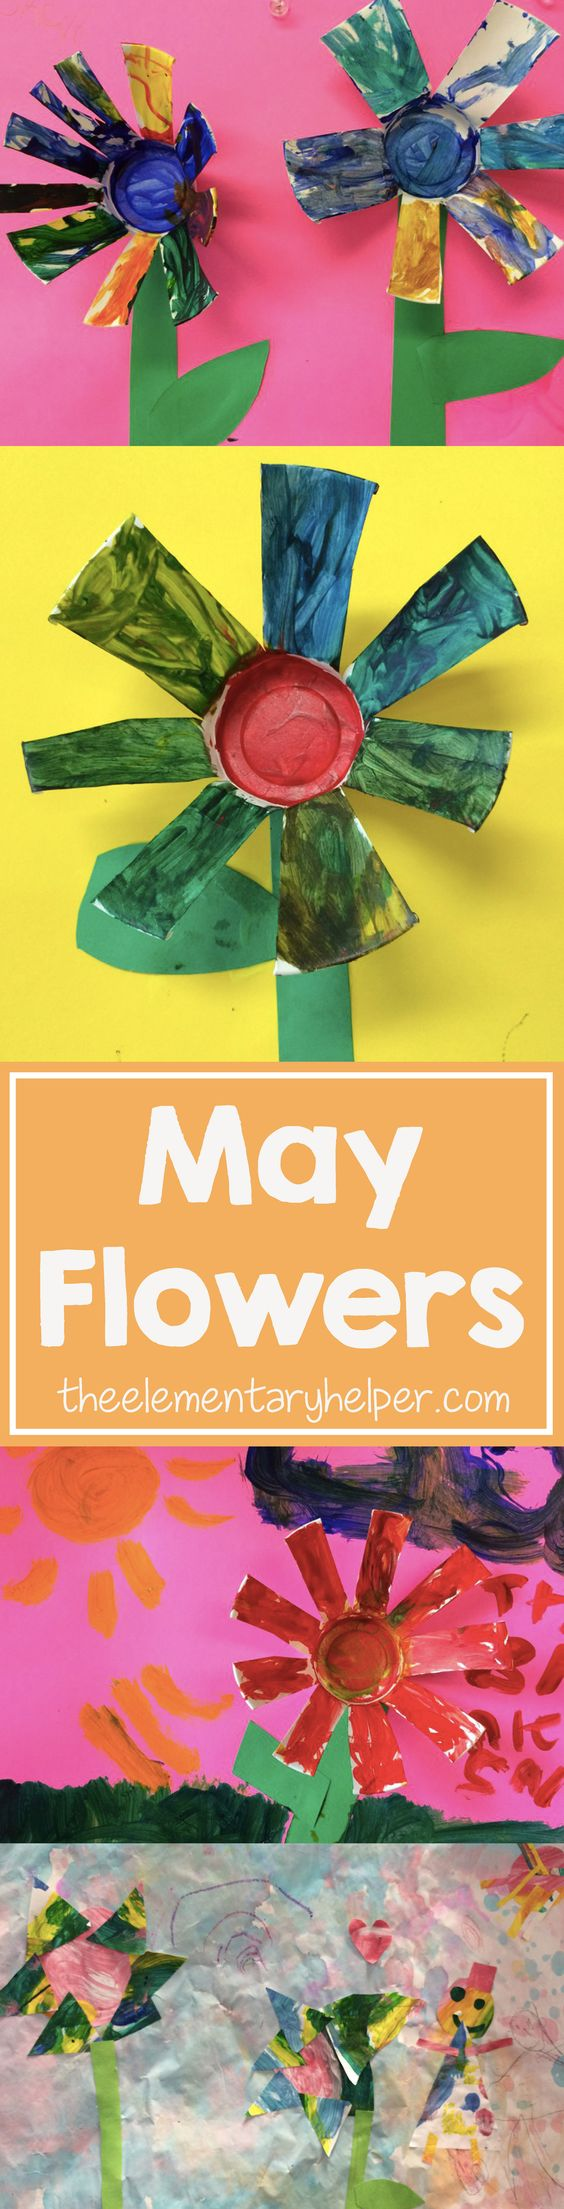 """Rachel's has definitely made the phrase """"April Showers Bring May Flowers"""" come true in her classroom this month. She's been reading books about flowers and spring & making crafts to go along. Below are a few of her favorite flower crafts. From theelementaryhelper.com"""